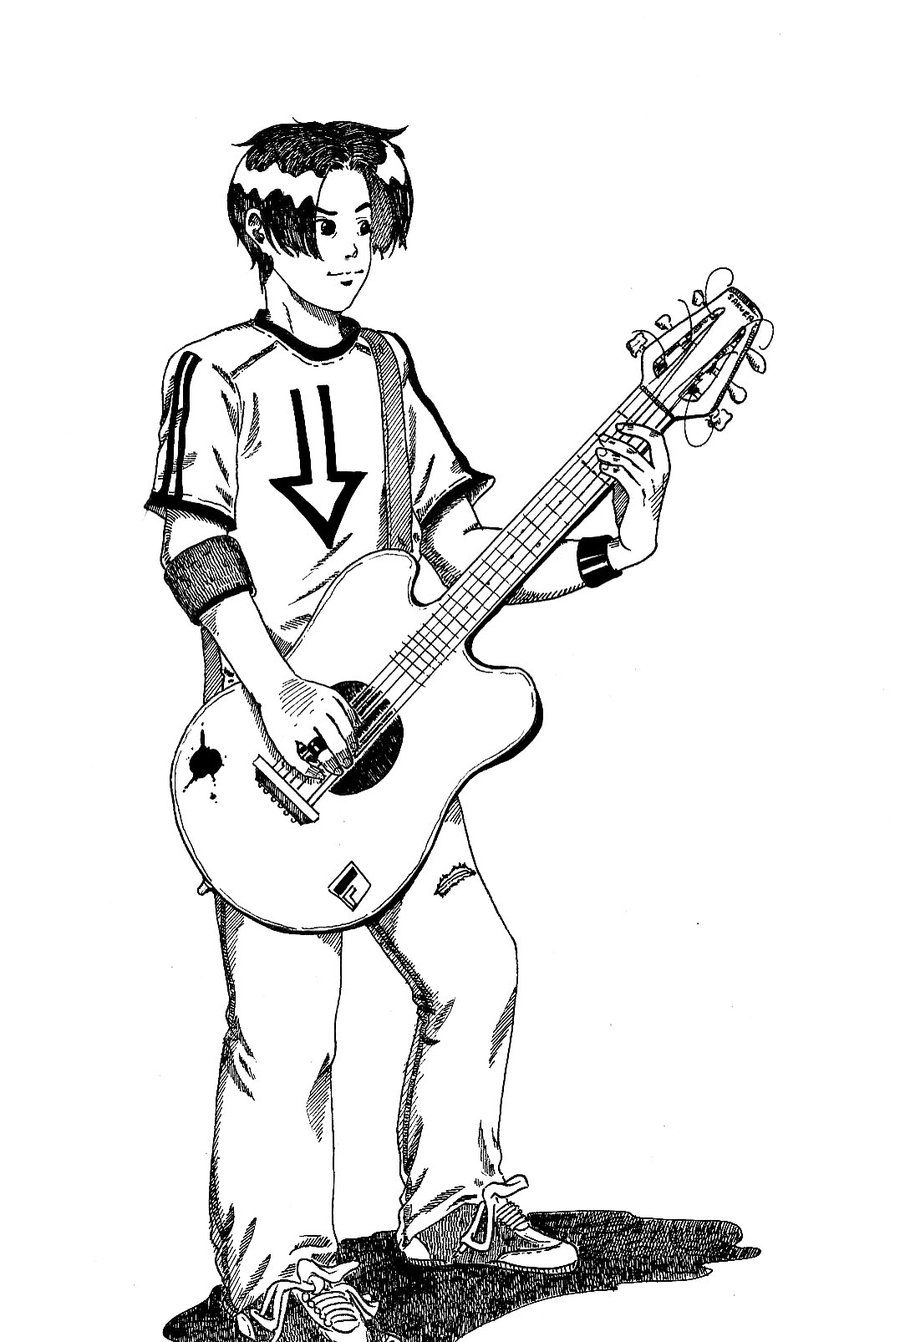 900x1342 Boys Pic With Guitar Pencil Art Pic Cute Boy Sketch With Guitar